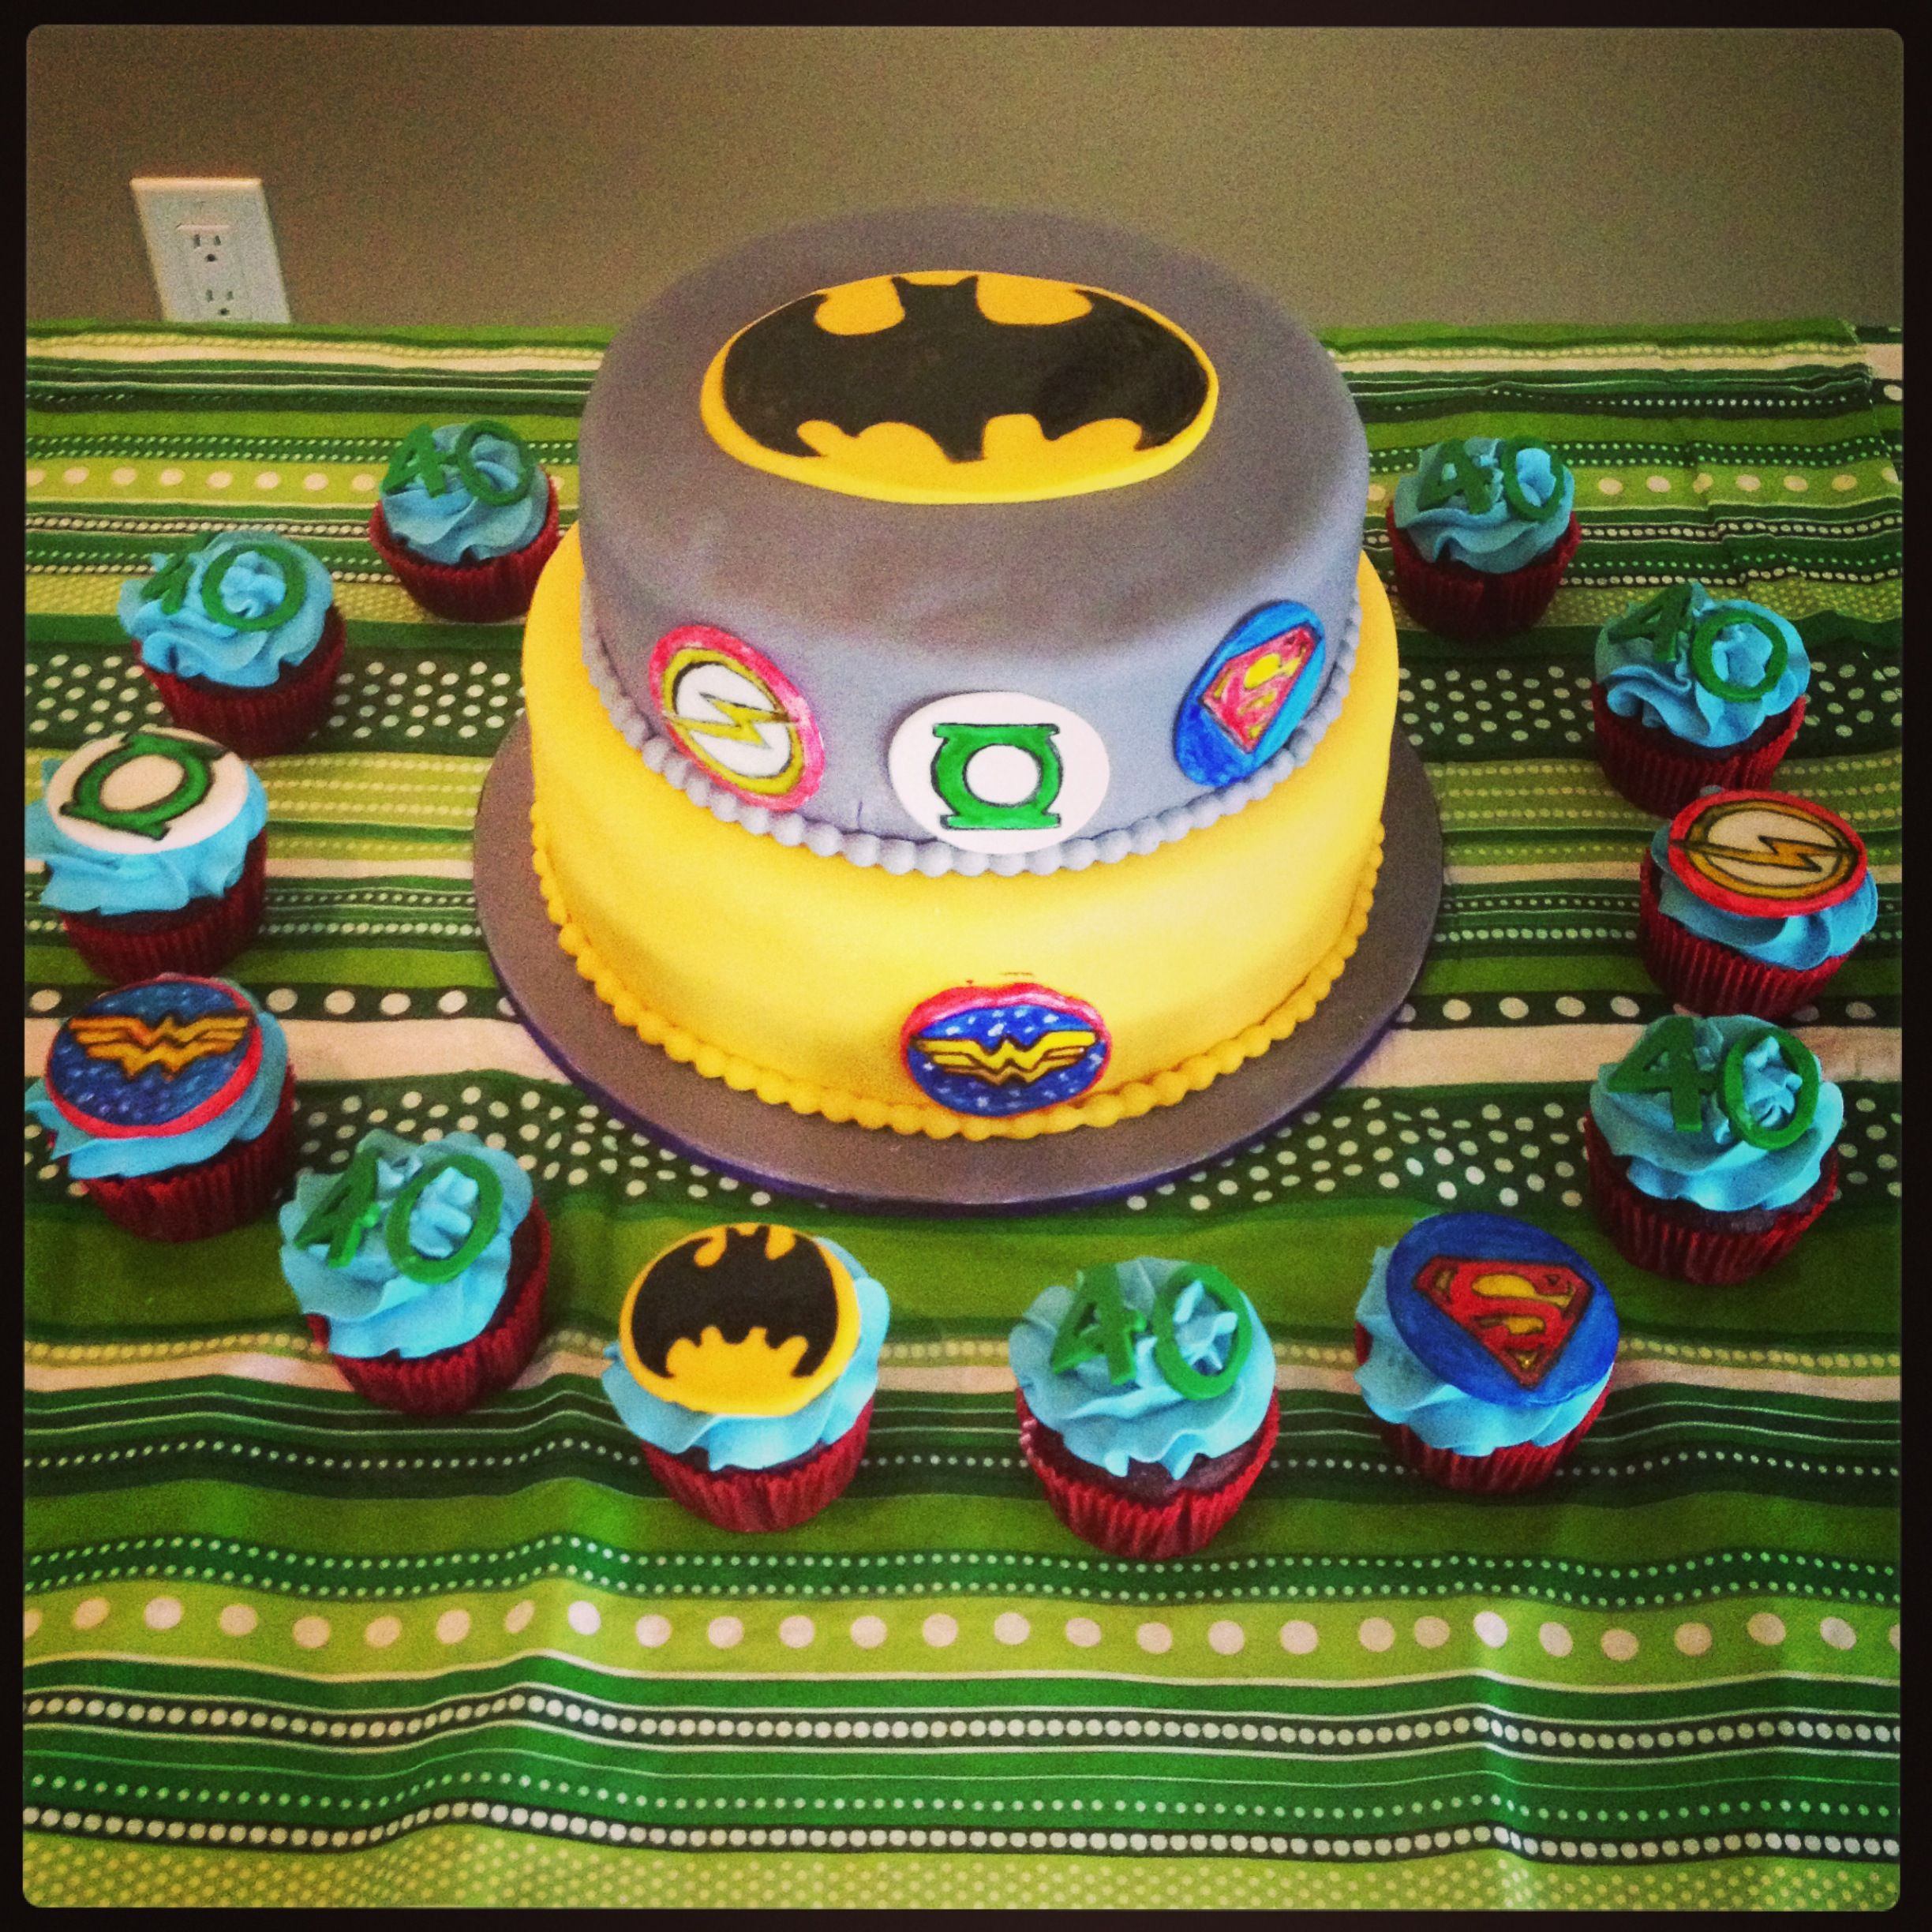 Justice League Cake And Cupcakes Justice League Cake Justice